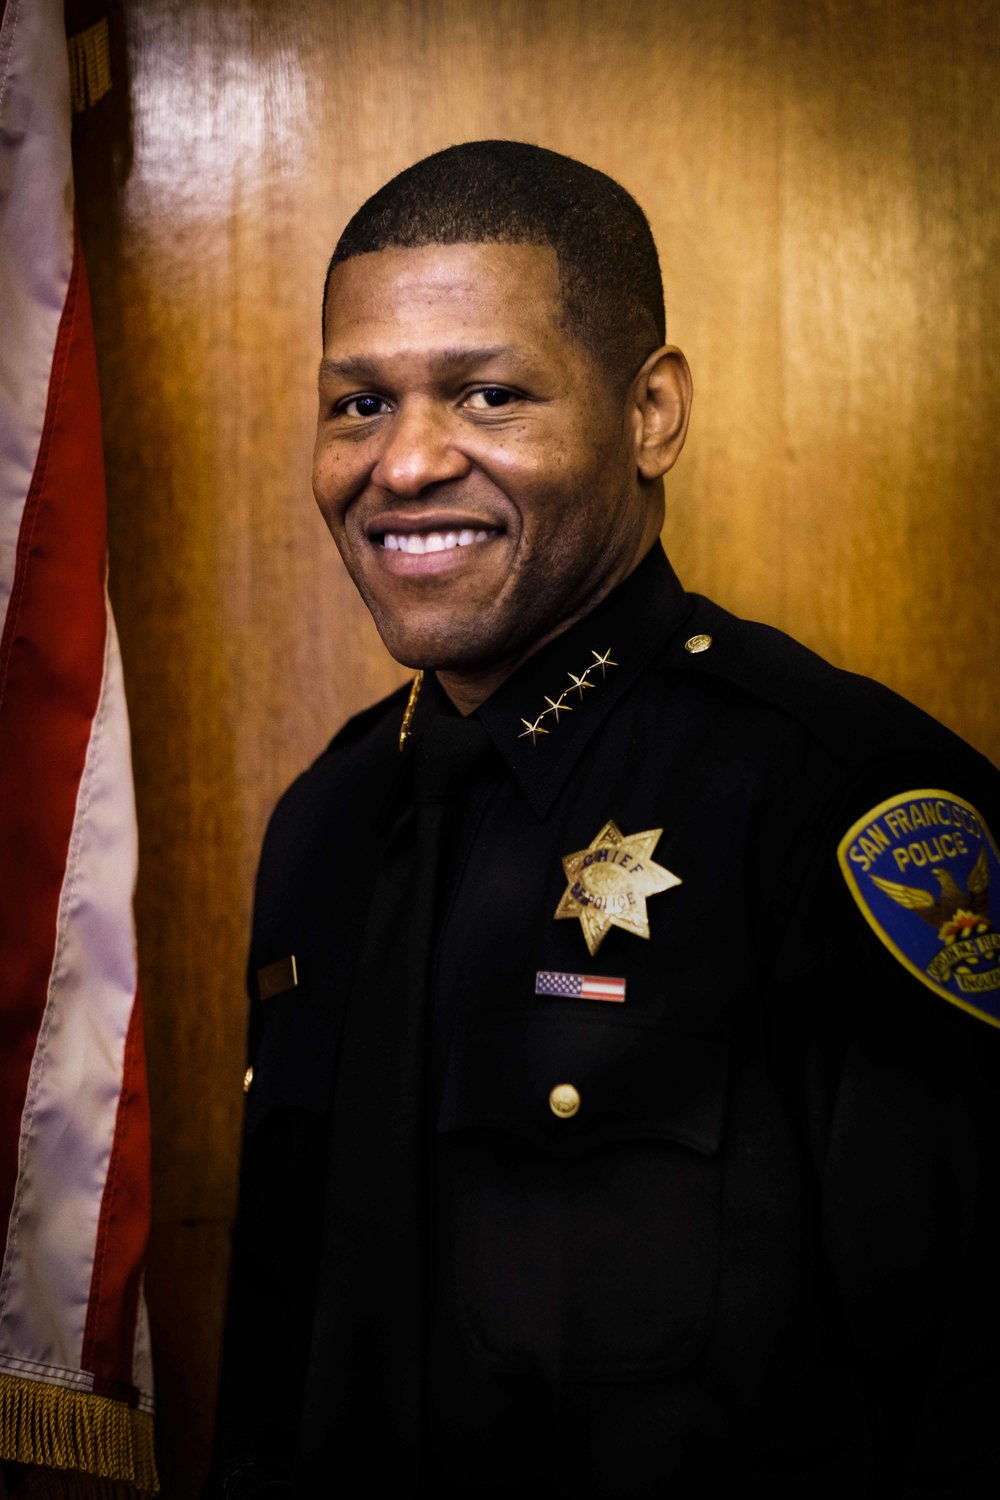 "William ""Bill"" Scott   San Francisco Police Chief William ""Bill"" Scott was sworn in by Mayor Edwin M. Lee on January 23, 2017. Chief Scott joins SFPD after serving 27 years in the Los Angeles Police Department. He rose through the ranks to become Deputy Chief of LAPD's South Bureau after being promoted to Commander in 2012."